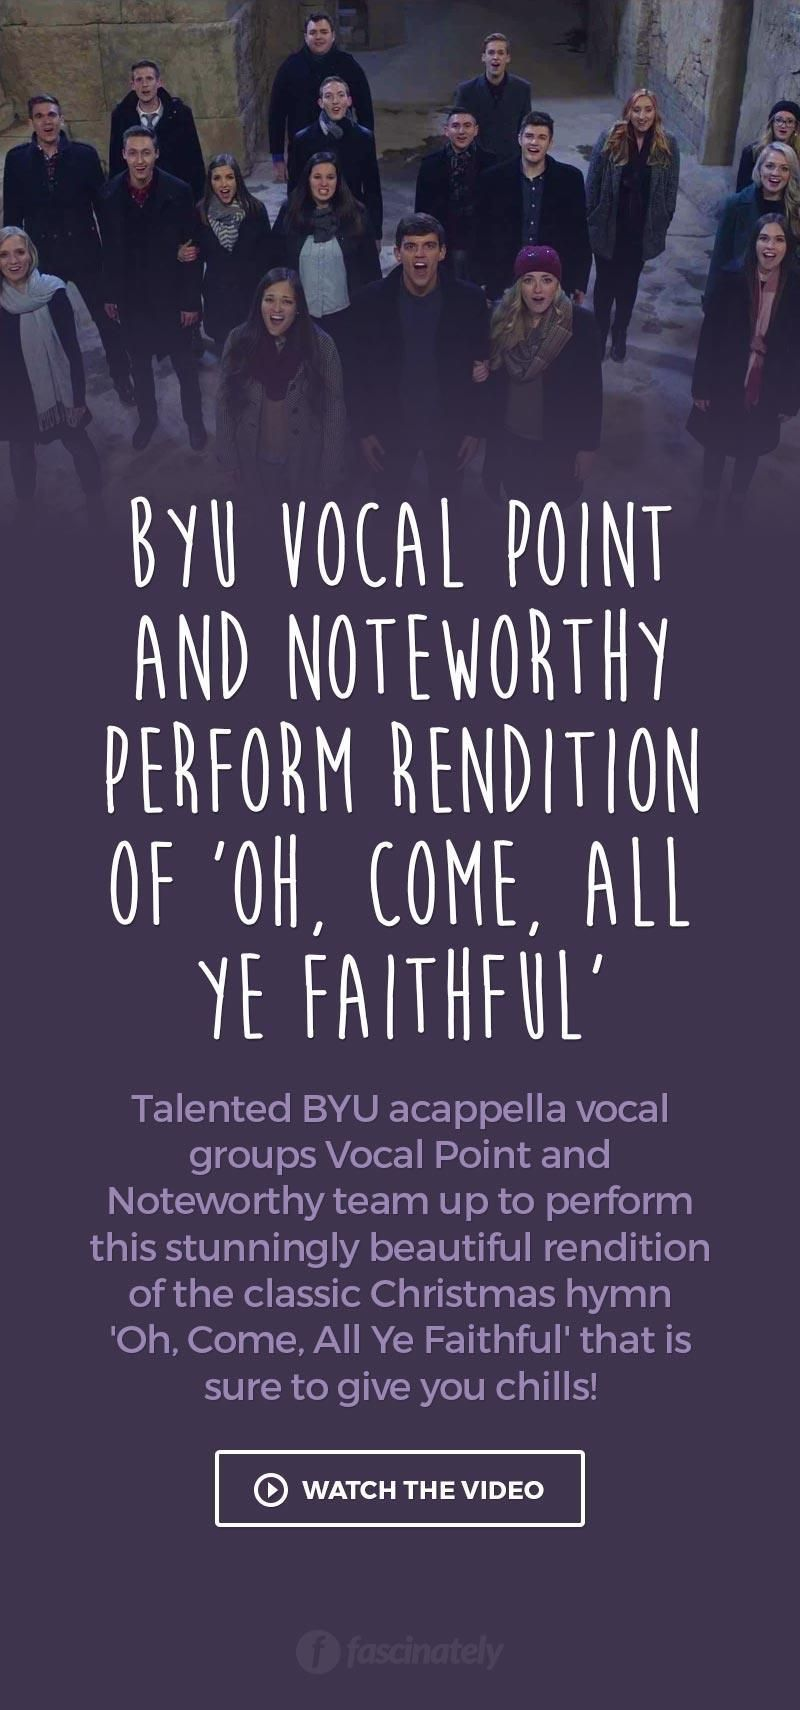 Byu Vocal Point And Noteworthy Perform Rendition Of Oh Come All Ye Faithful Vocal Point Vocal Byu